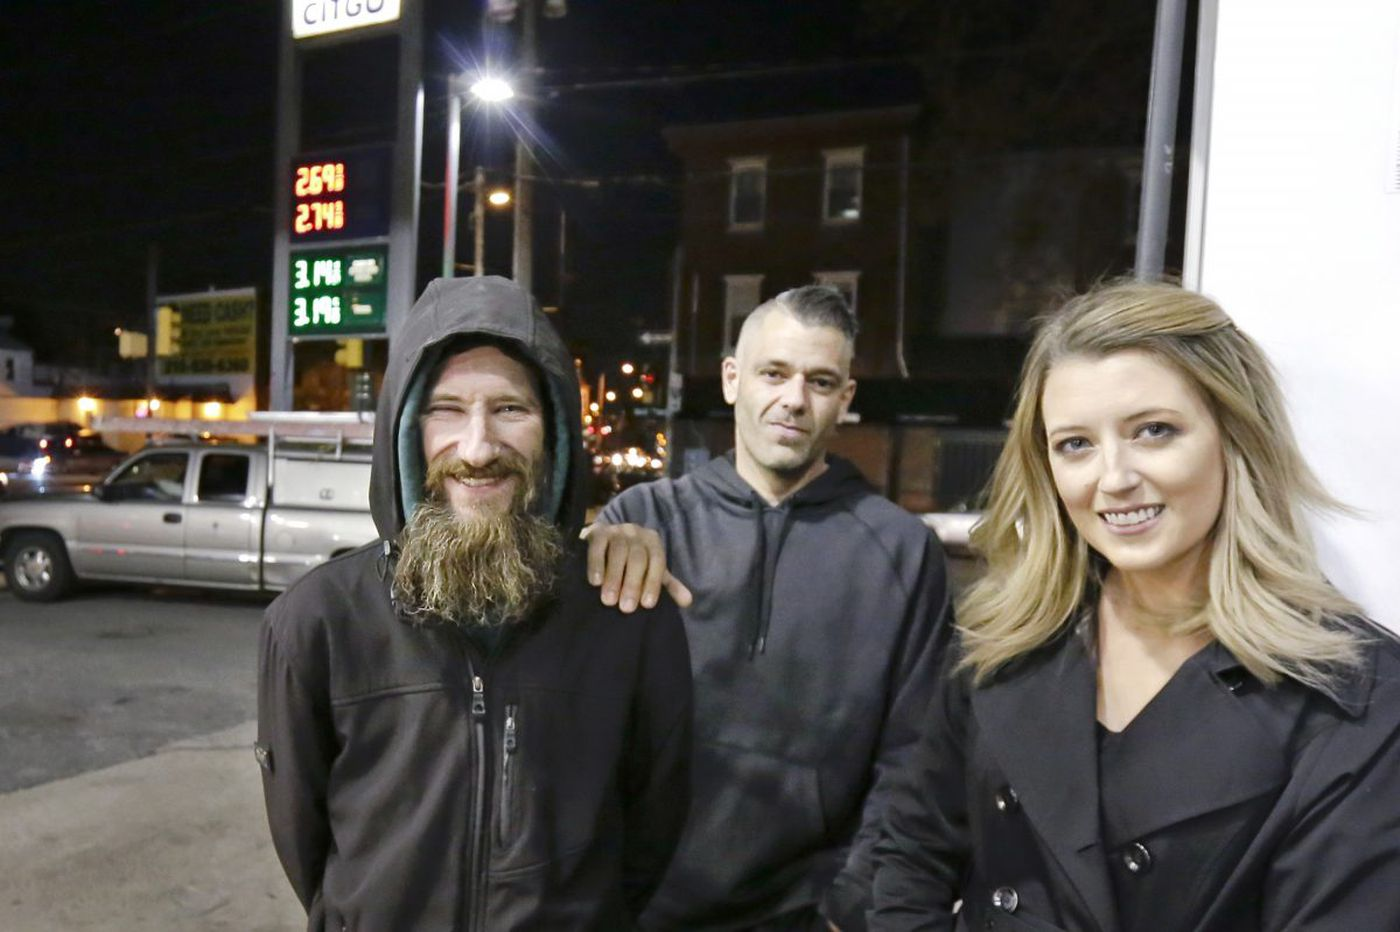 Reward fund for Philly homeless man soars to over $362K